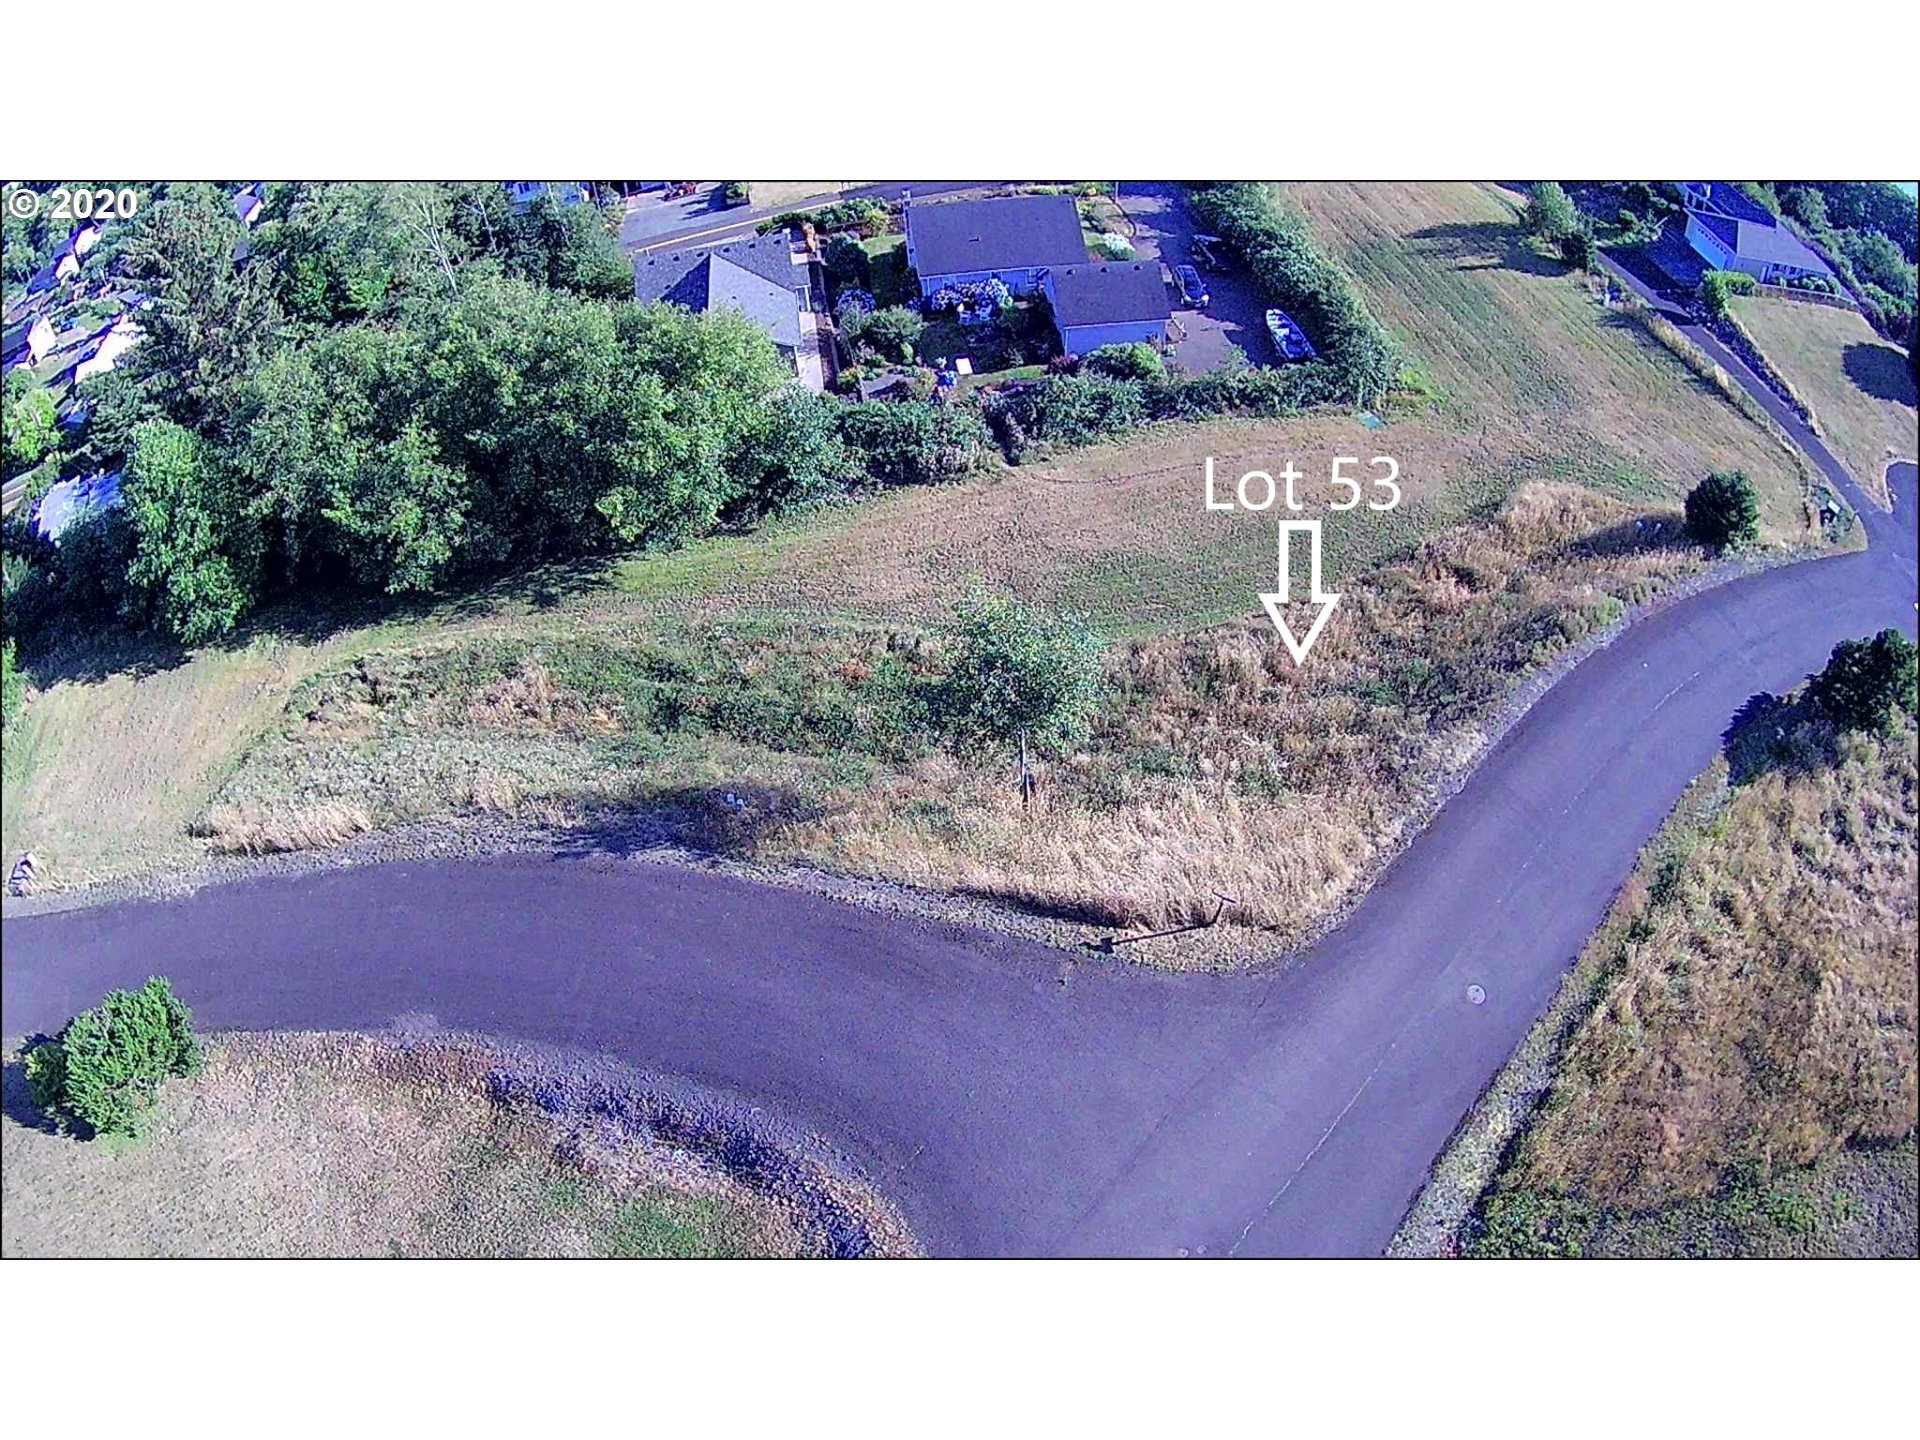 South Ridge Lot53, Bay City, Oregon 97107, ,Lots And Land,For Sale,South Ridge Lot53,20017350